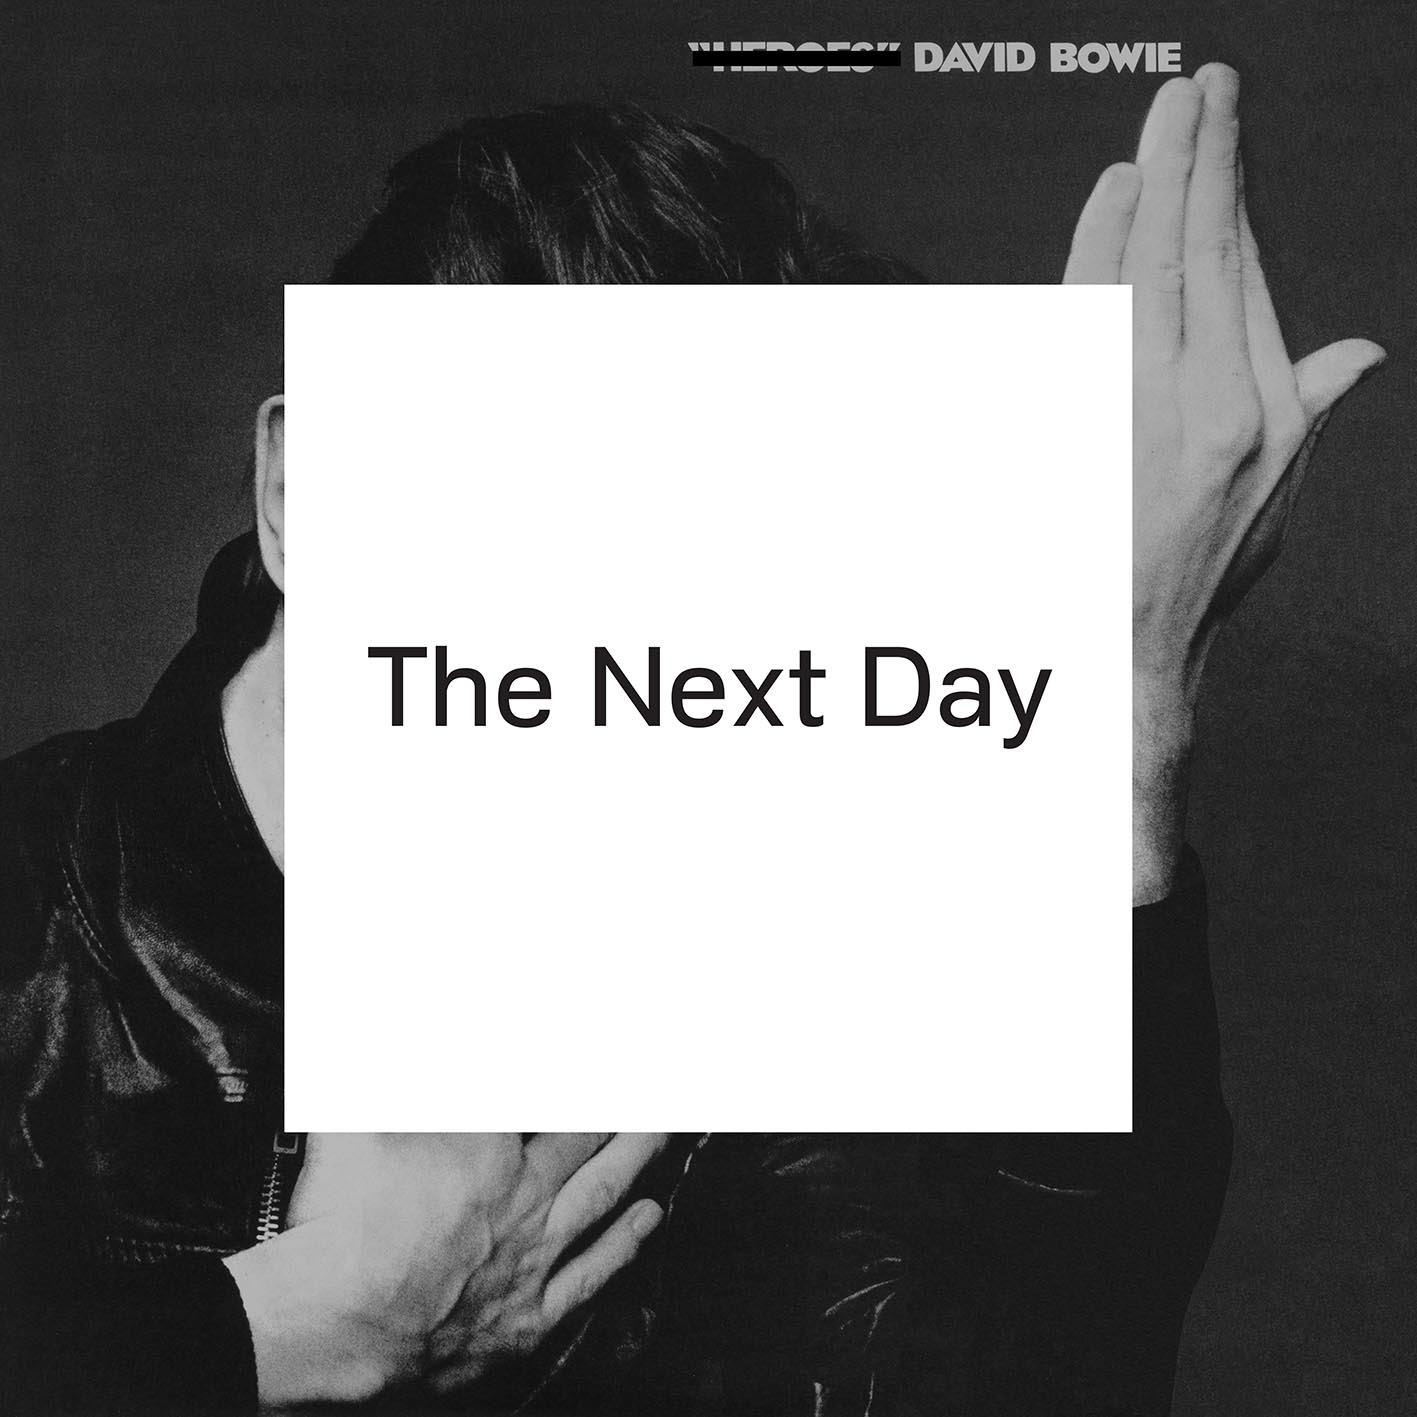 The Follow-Up To David Bowie's The Next Day May Be Out Sooner Than You Think